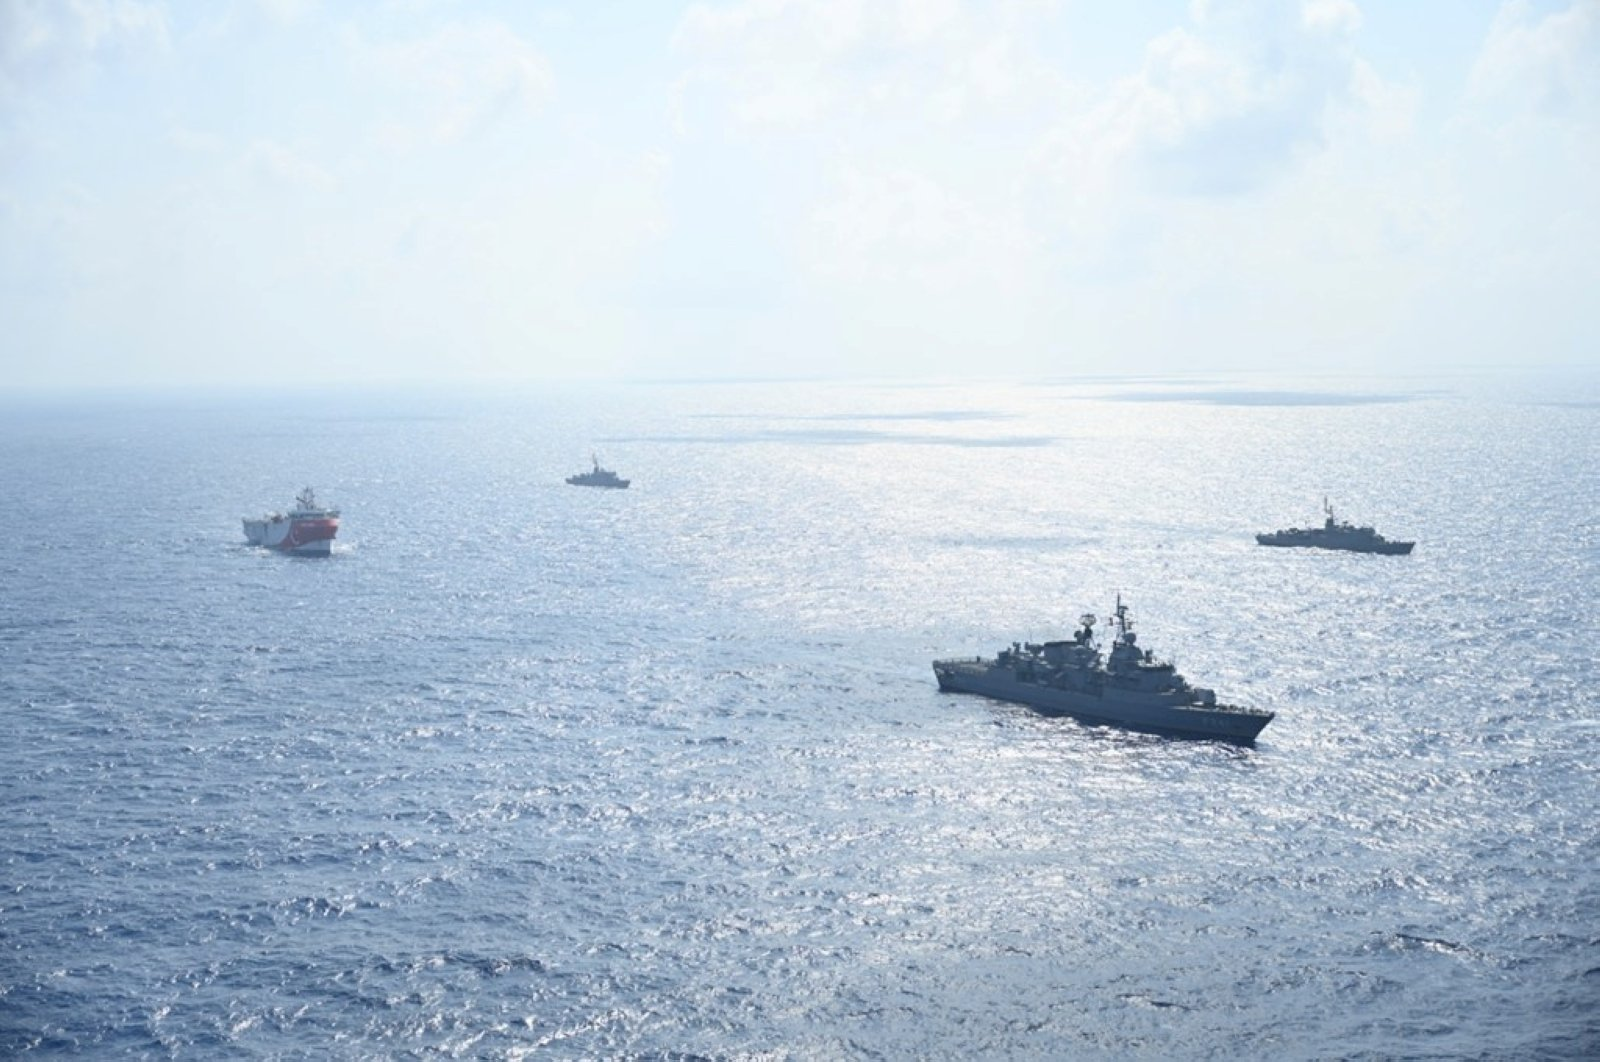 Turkish seismic research vessel Oruç Reis is escorted by Turkish Navy ships as it sets sail in the Mediterranean Sea, off Antalya, Turkey, Aug. 10, 2020. (Reuters Photo)